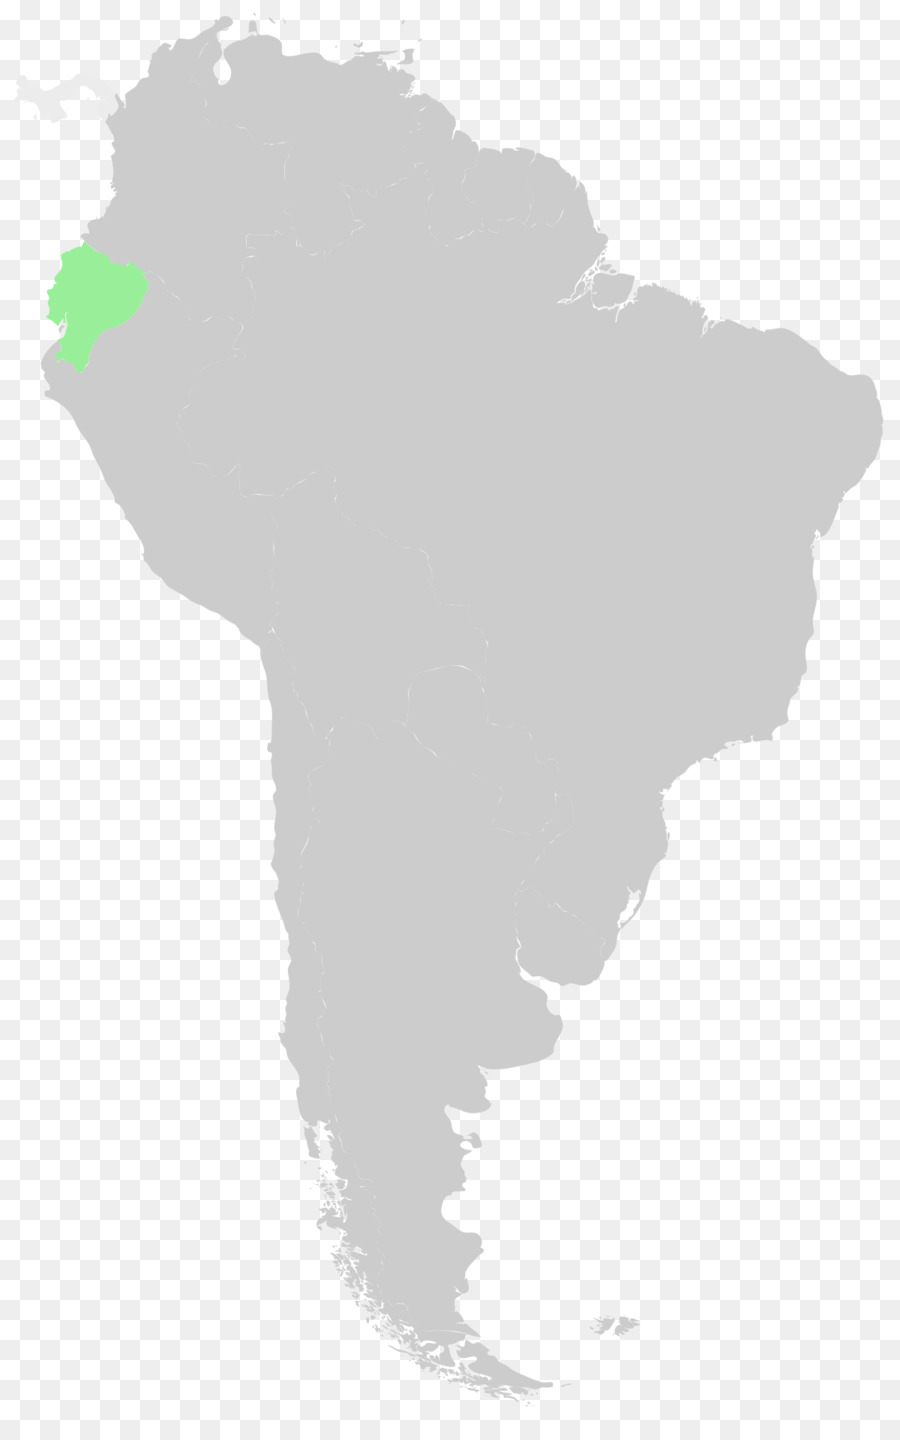 South America Latin America United States Map - united states png ...